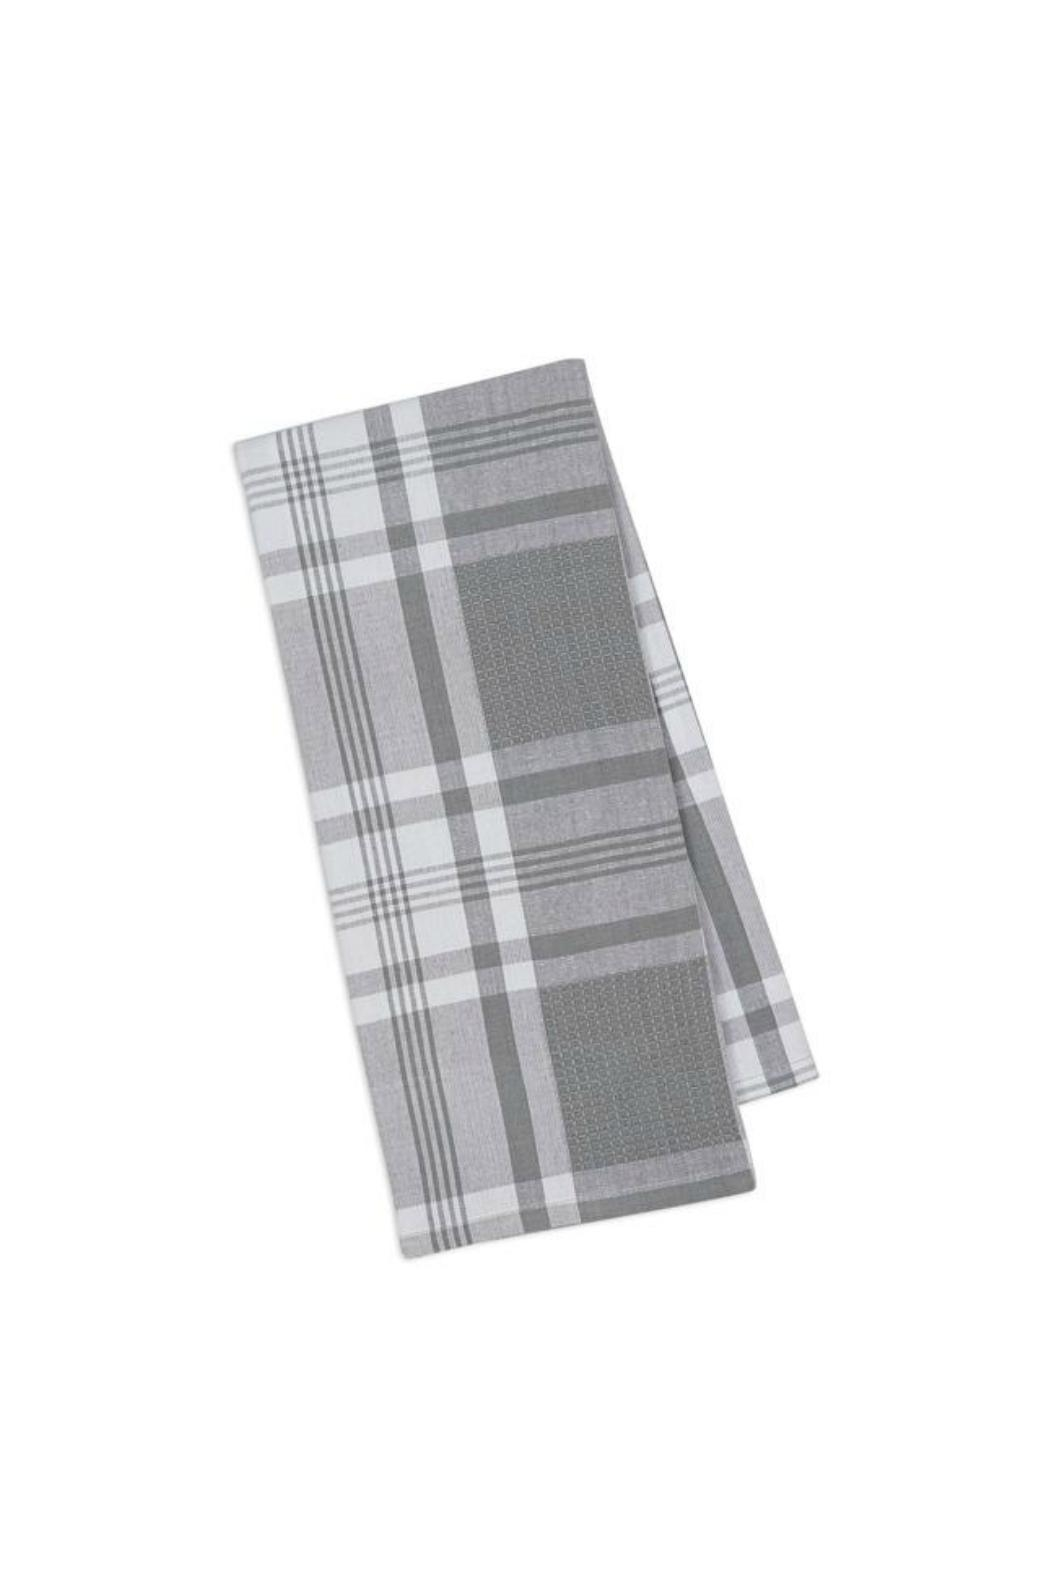 DII Design Imports Granite Grey Kitchen Towel - Main Image